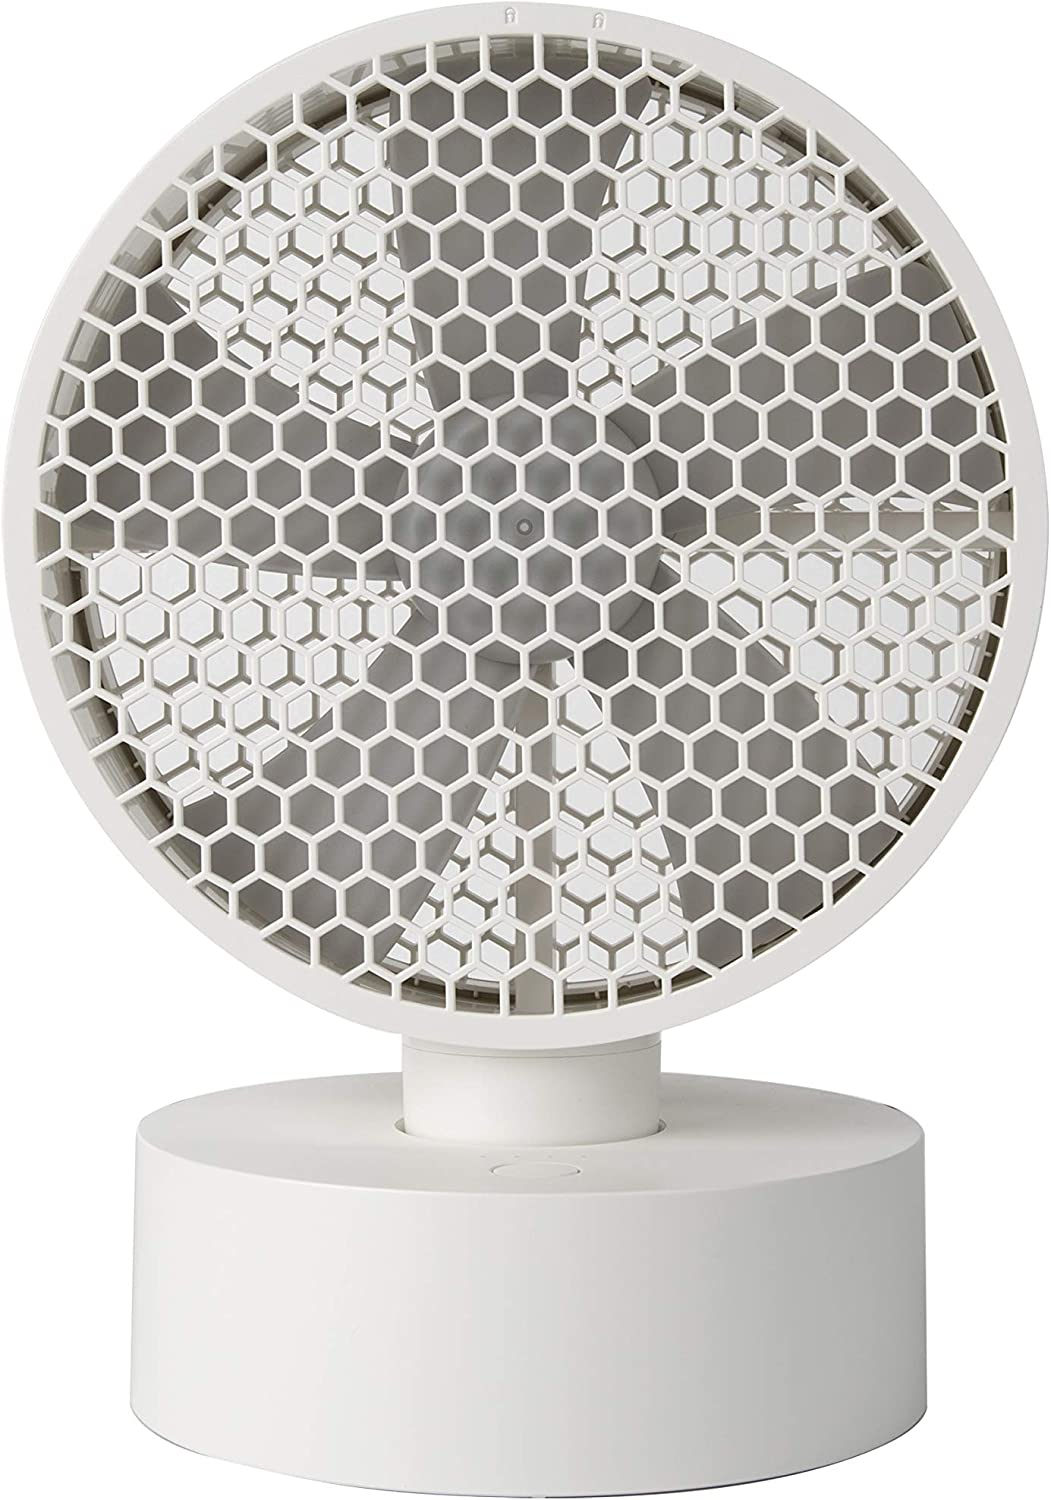 Coolean 8 inch Honeycomb Oscillating Desk Fan White USB 3900mAh battery operated table fan with 4 speeds Quiet Operation Small Portable Personal Fan for Home Bedside Dorm Office Desktop Outdoor Camping Travel